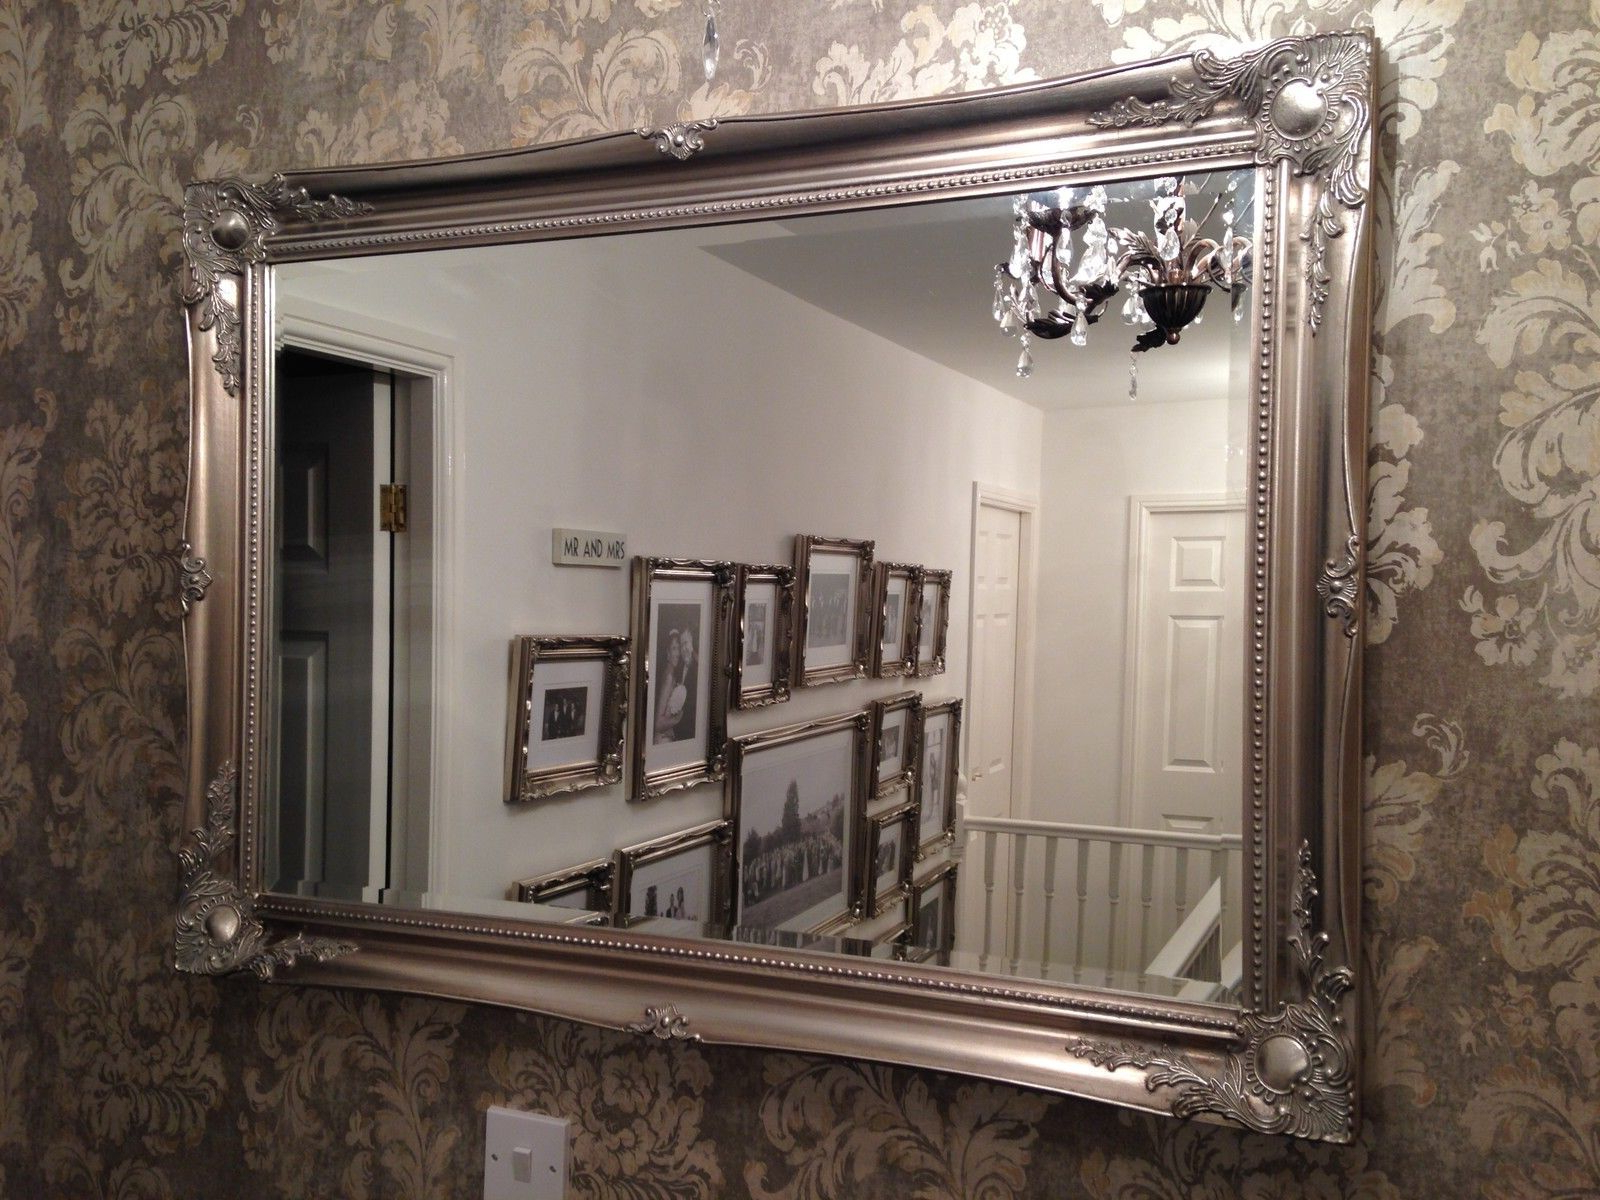 Large Antique Silver Elegant Wall Mirror – Free Uk Postage – Bevelled Mirror Throughout Widely Used Antique Silver Wall Mirrors (Gallery 11 of 20)